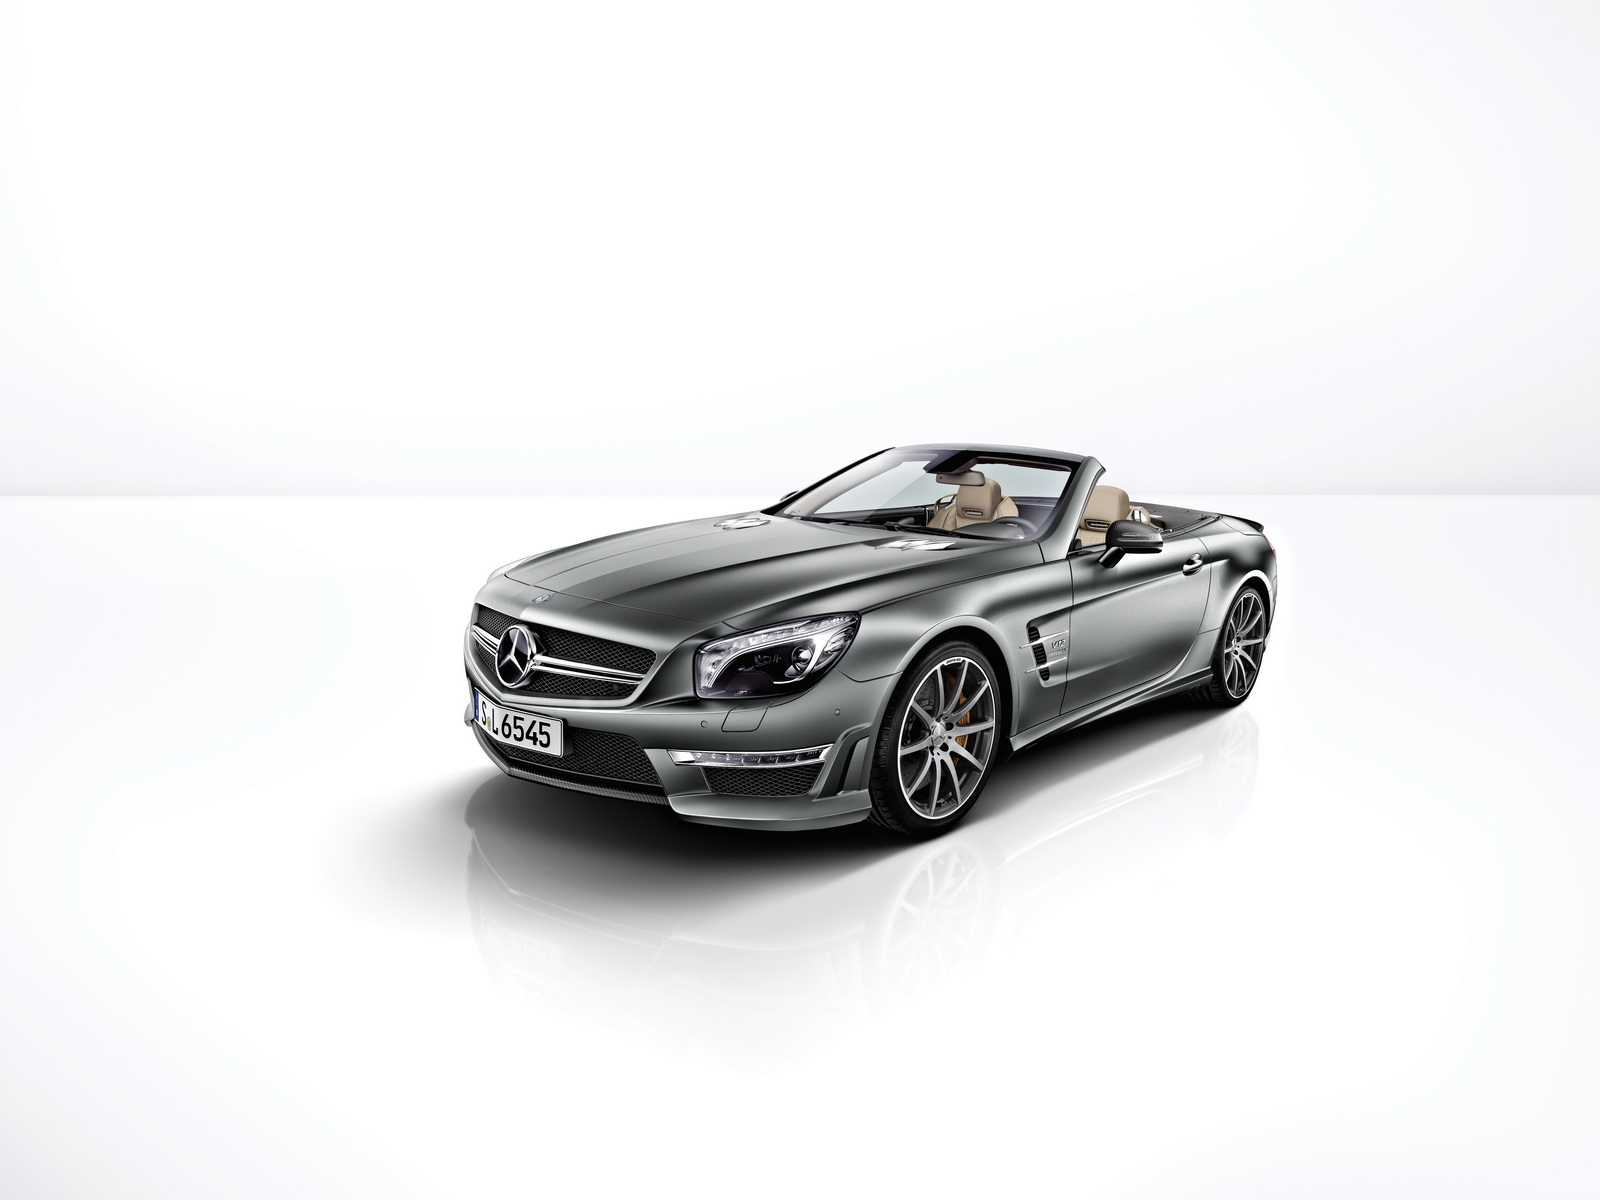 the new mercedes benz sl 65 amg 45th anniversary 45 years of amg marking the anniversary. Black Bedroom Furniture Sets. Home Design Ideas